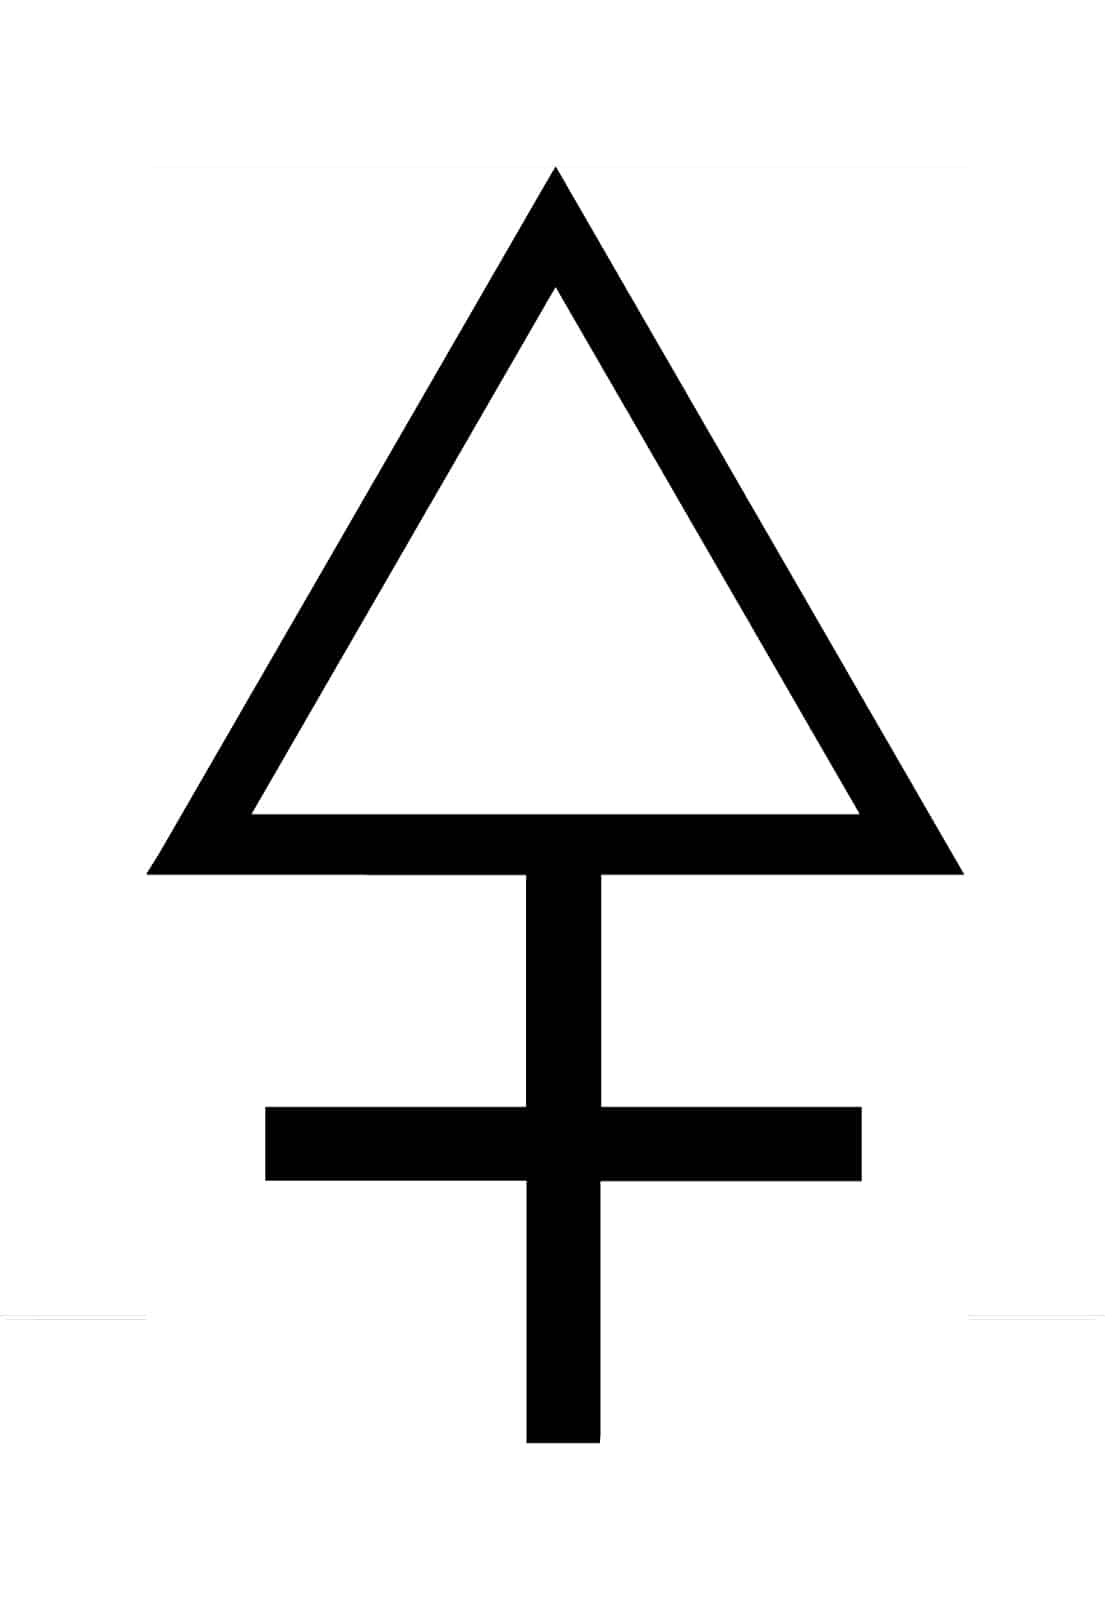 Although There Were No Resources Mentioning This Symbol Being Used To Represent Satan Before For